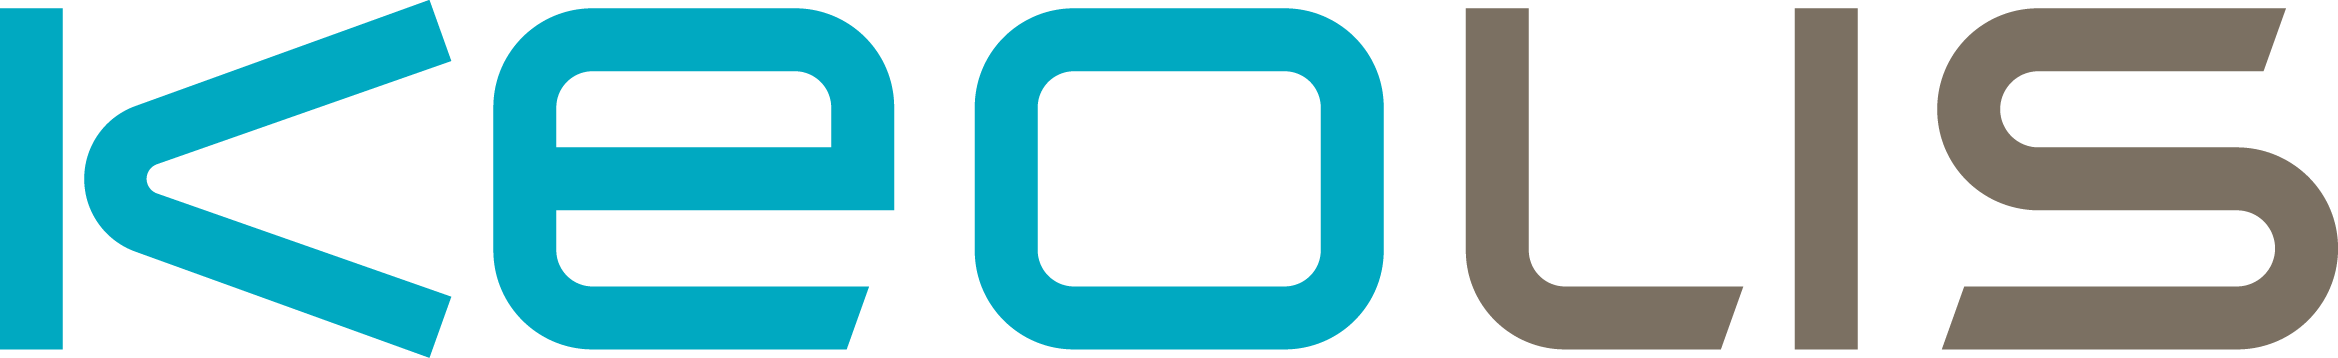 logo-simple-keolis.png